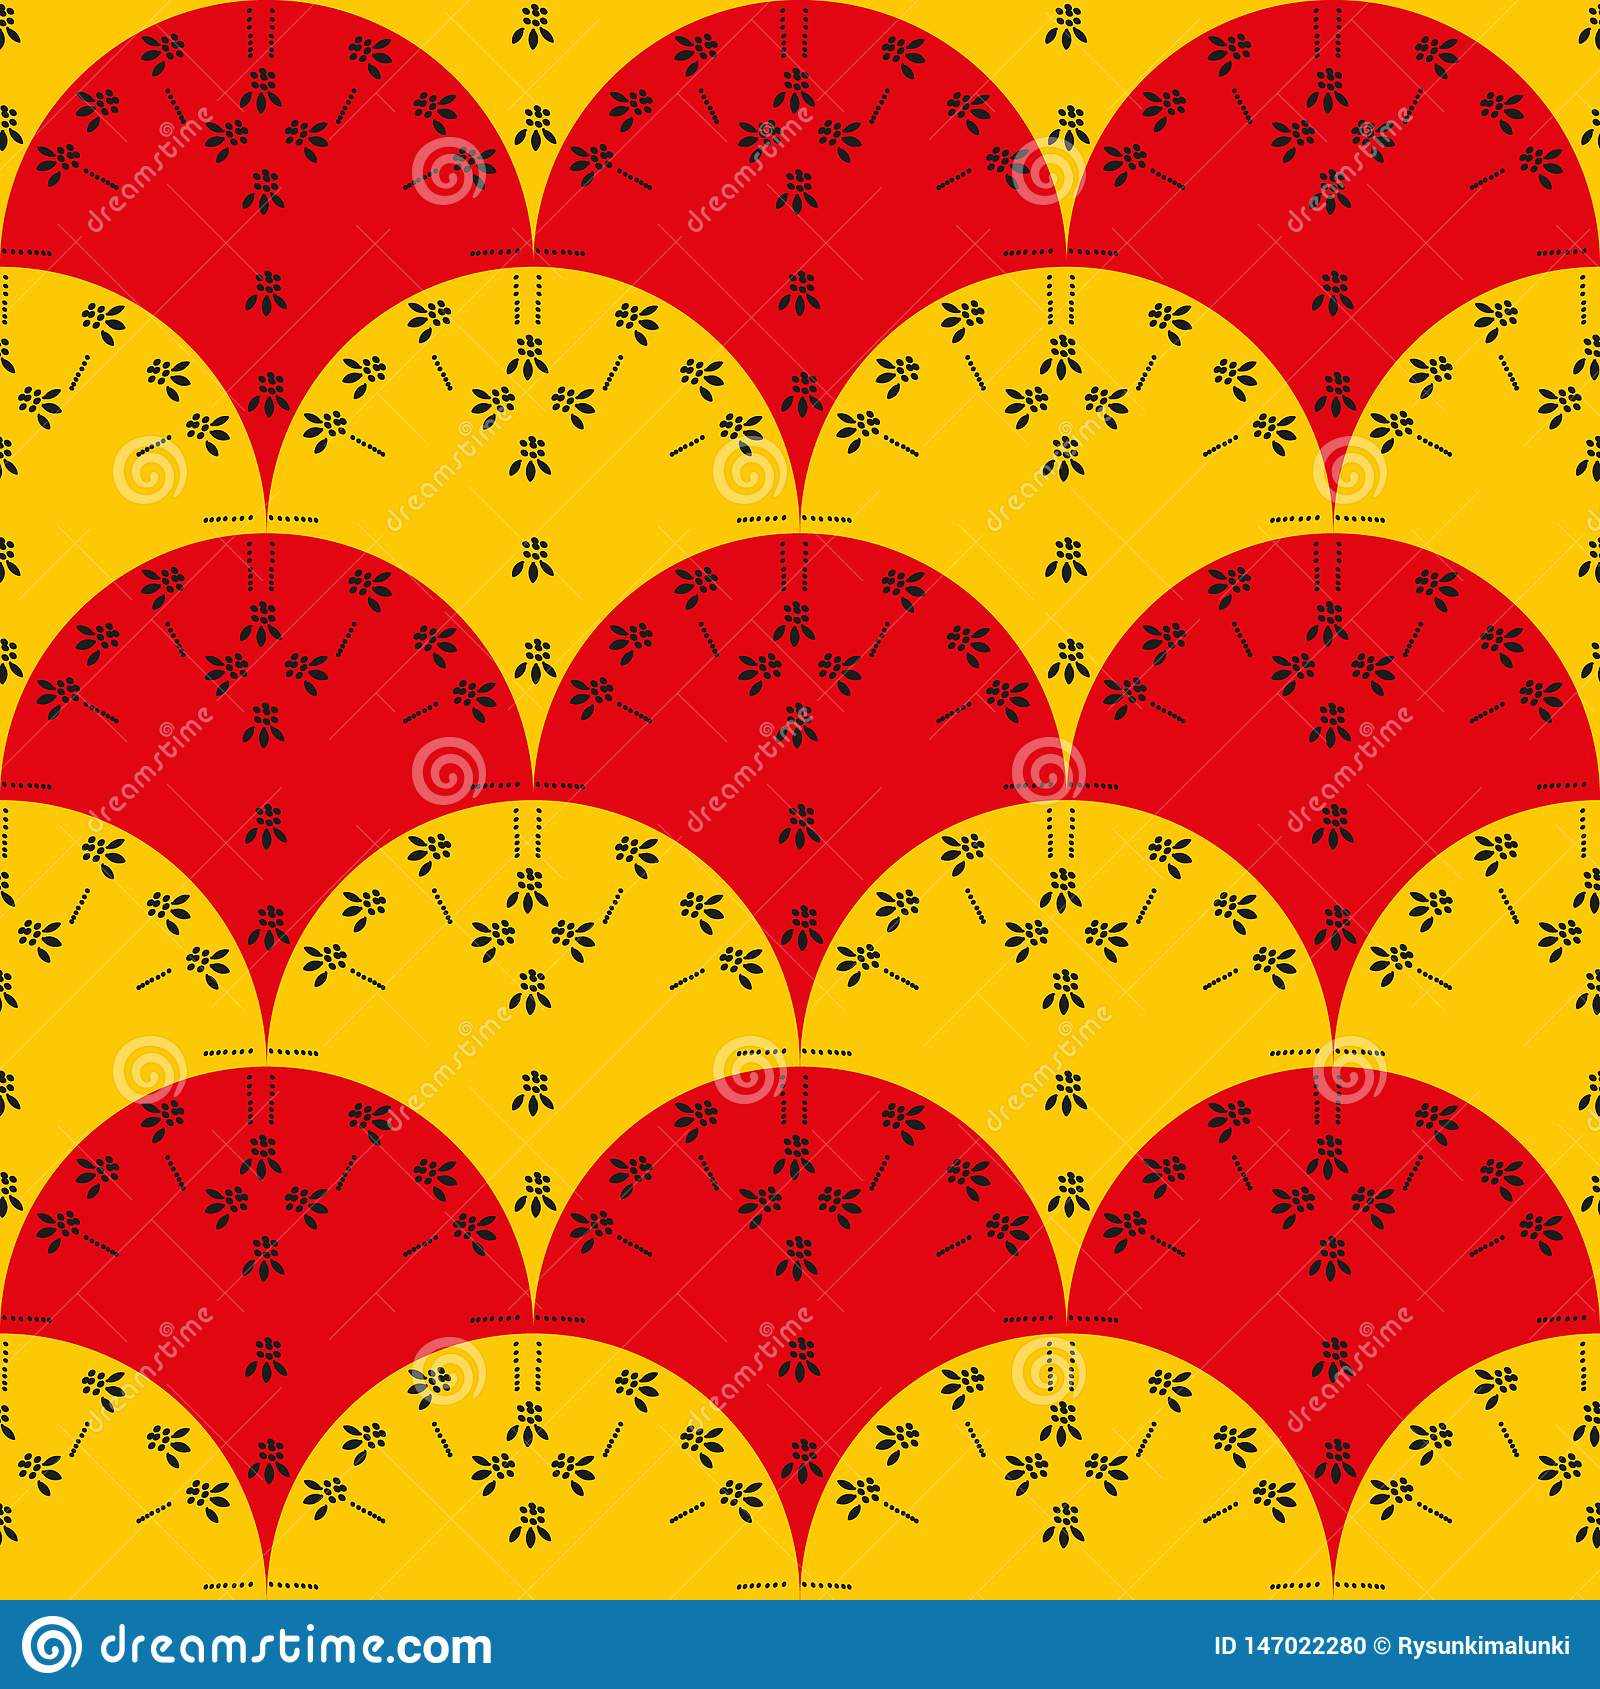 Seamless vector pattern with red and yellow fans with black floral print